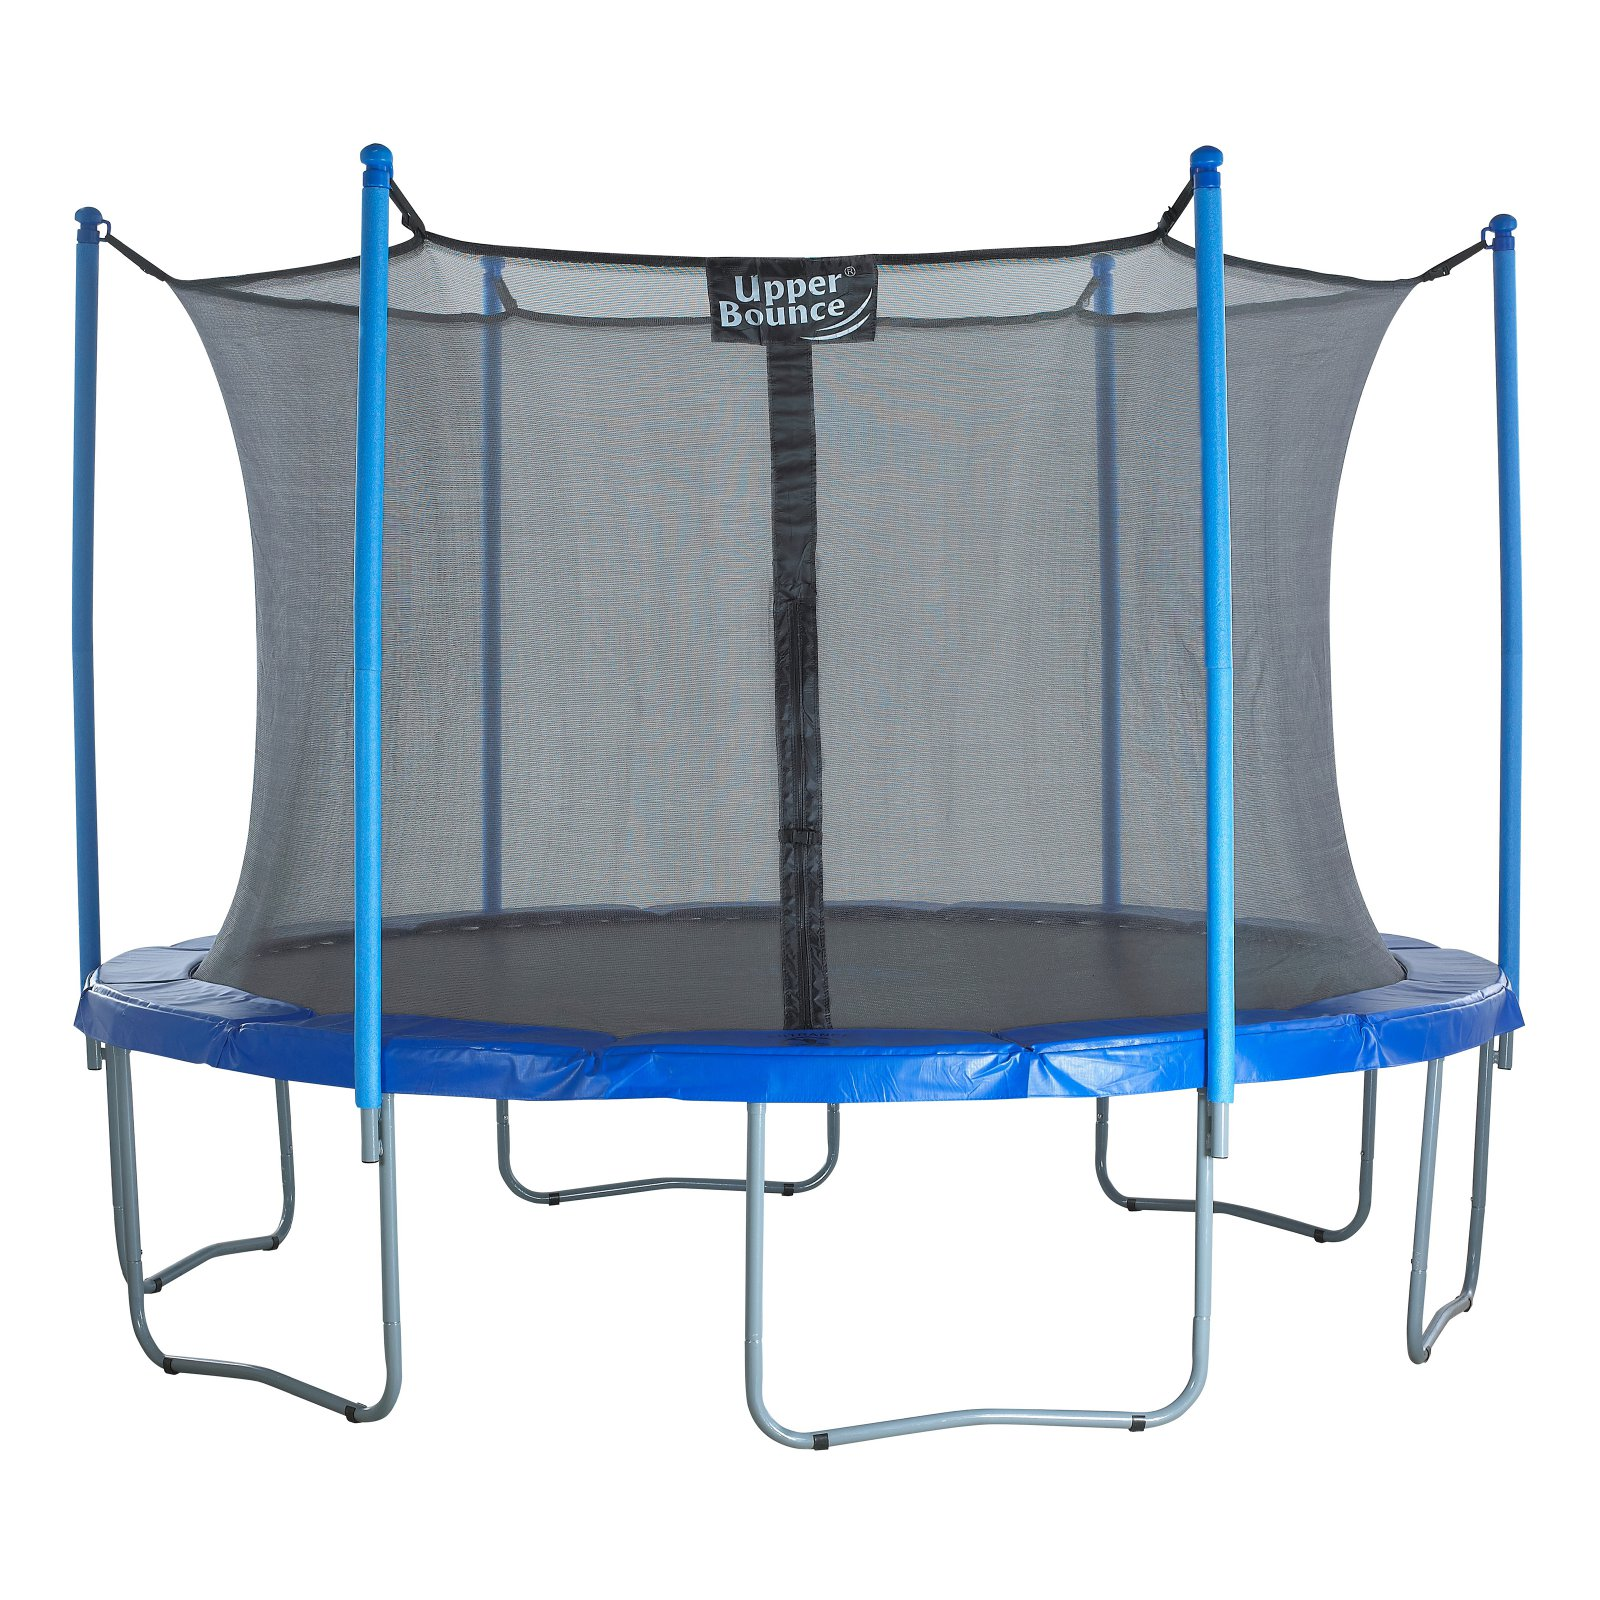 Upper Bounce 16 ft. Trampoline and Enclosure Set by Upper Bounce